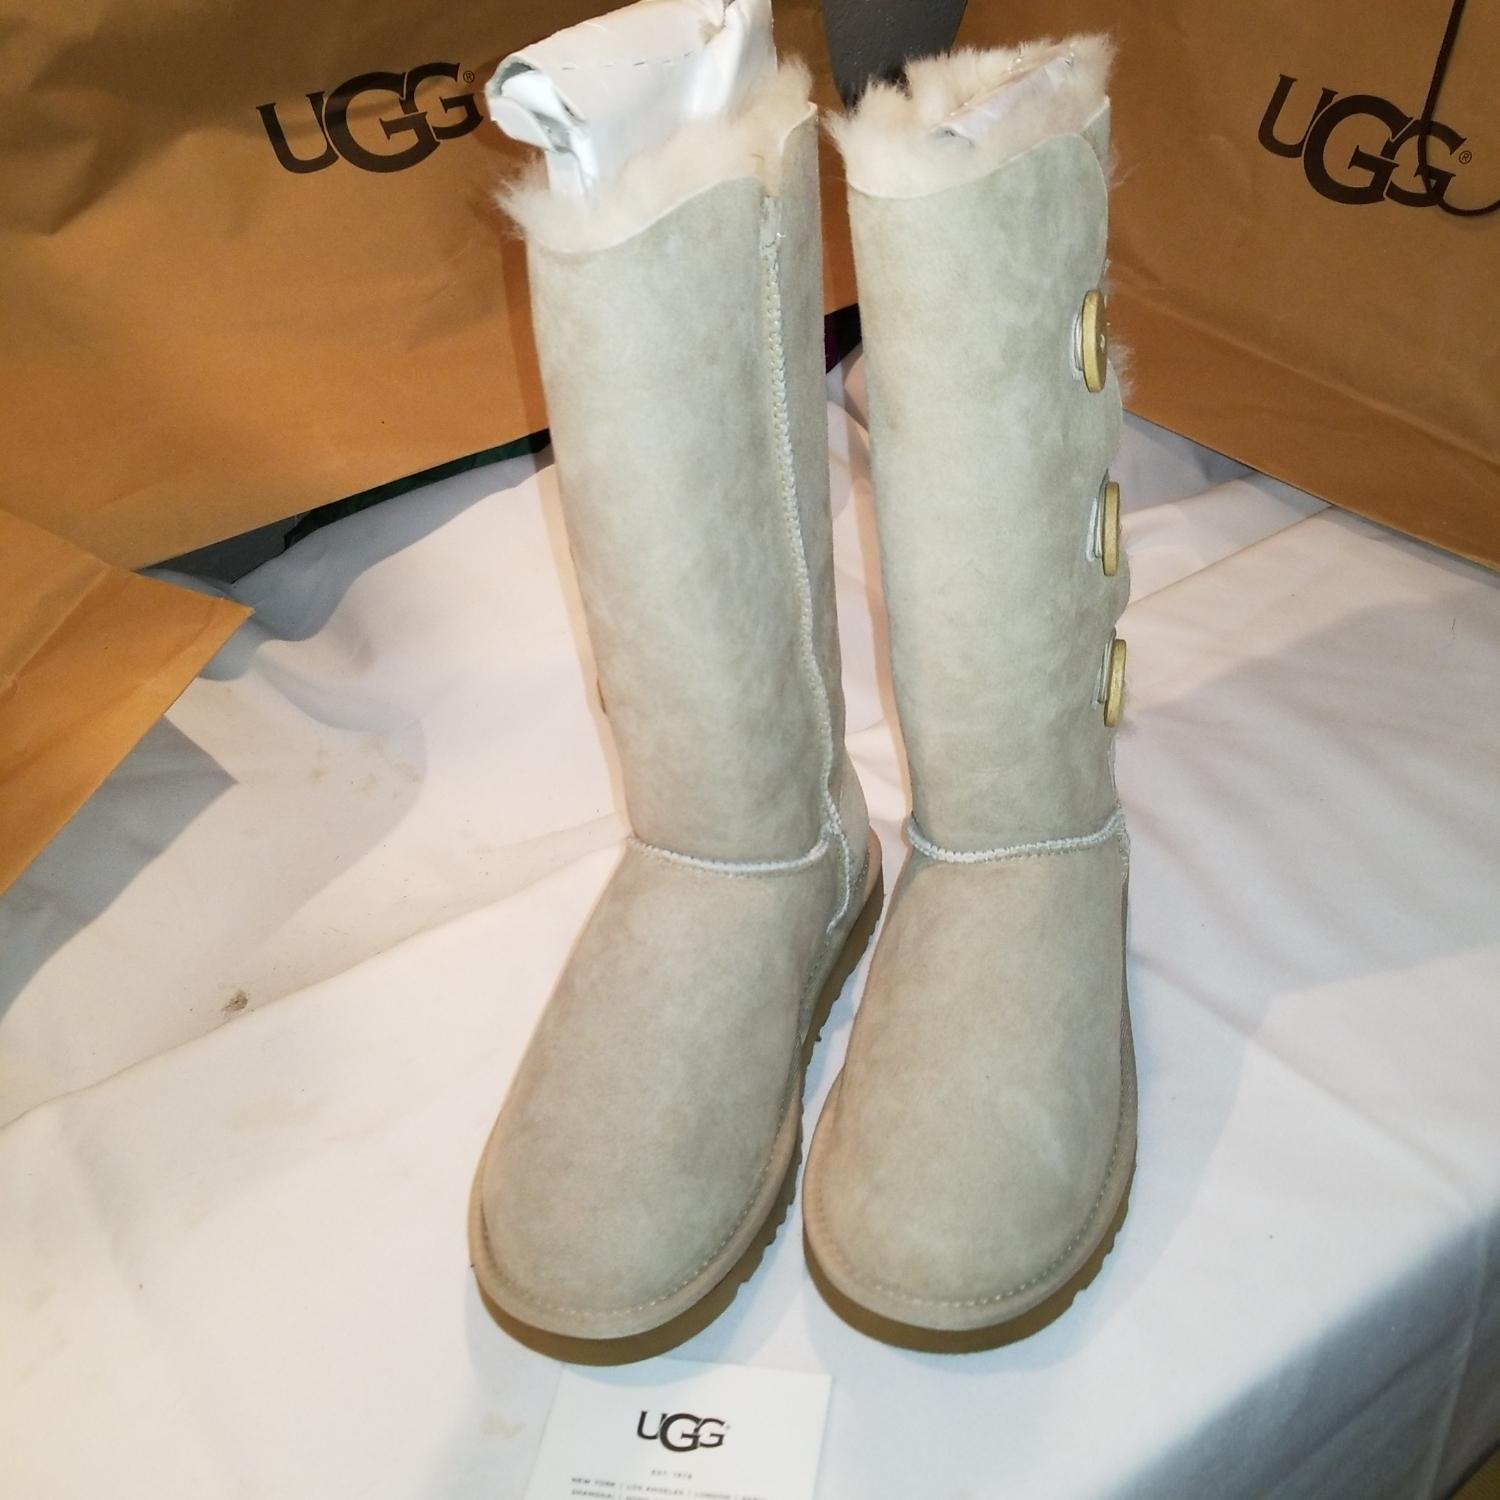 0a32a91bf66 switzerland ugg mini bailey button outfit 6.0 0e593 076f8